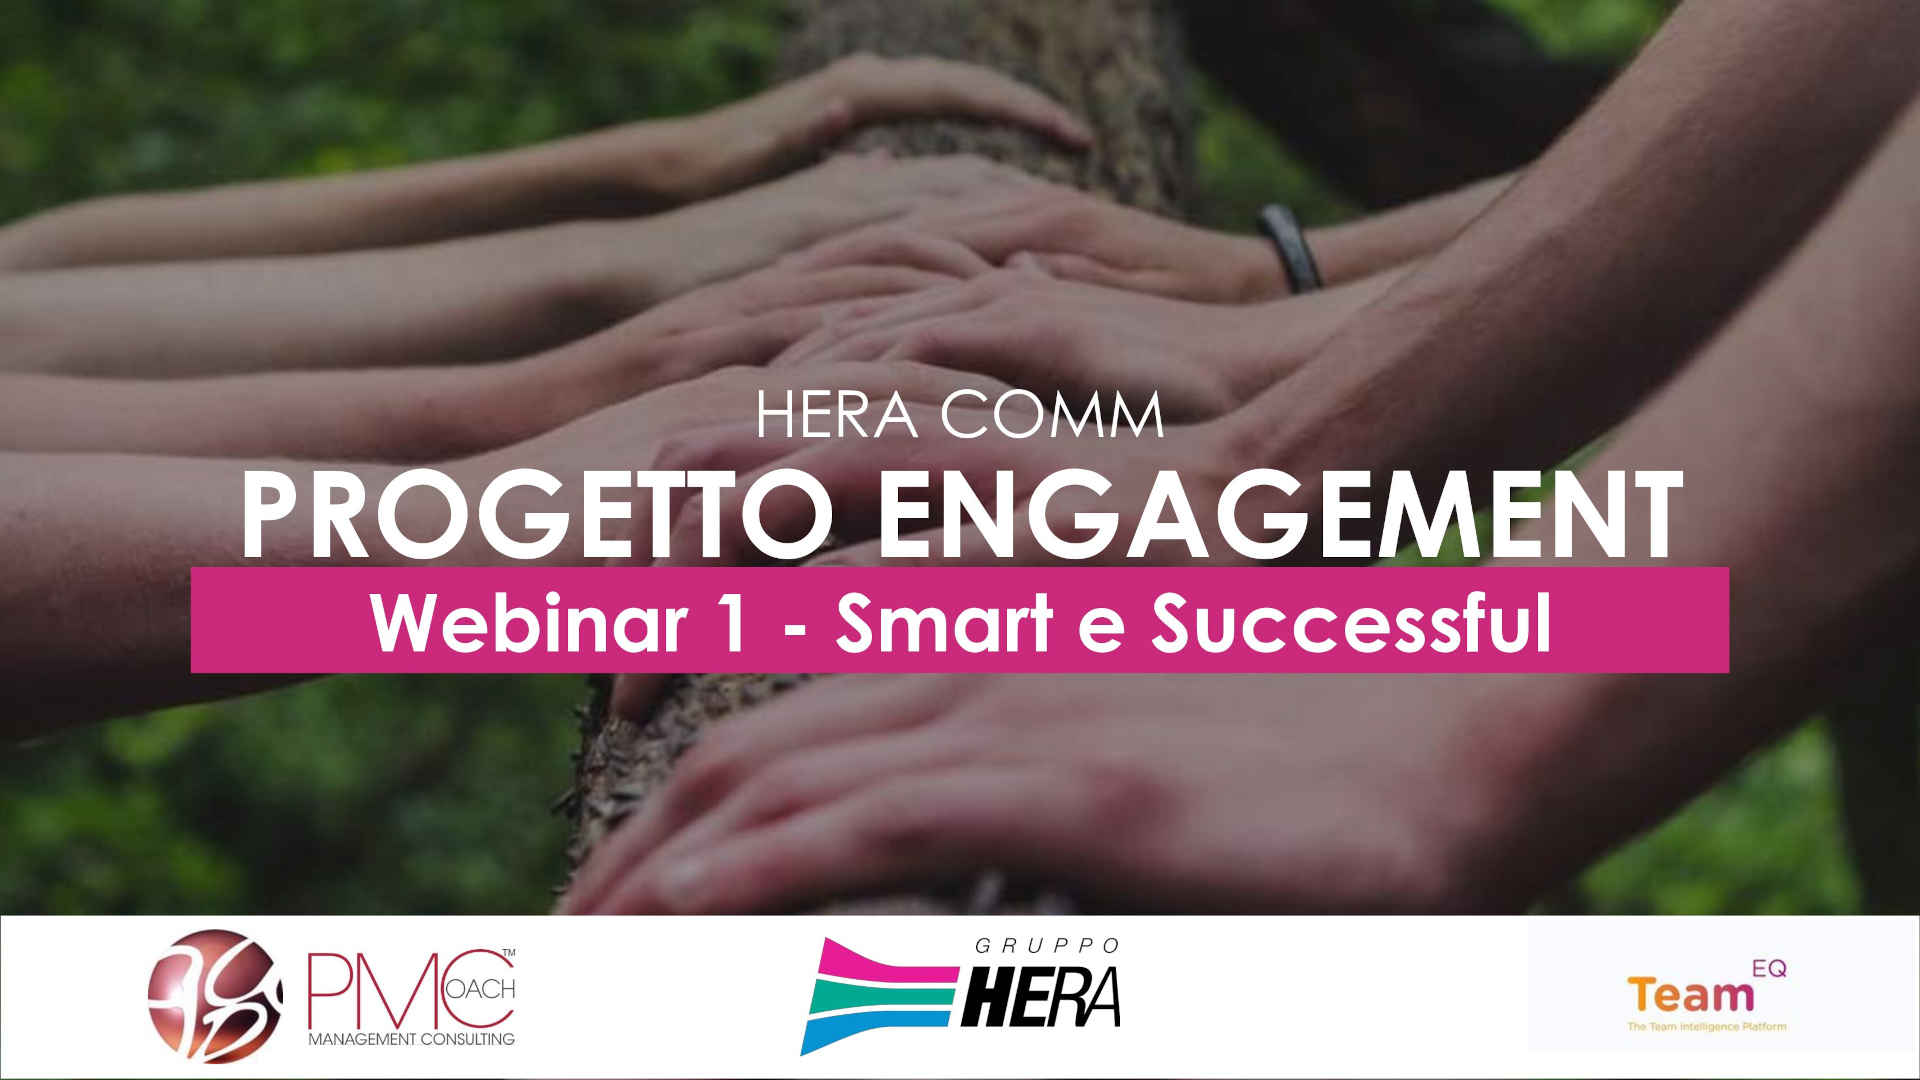 HeraComm – Progetto Engagement – Formazione manageriale